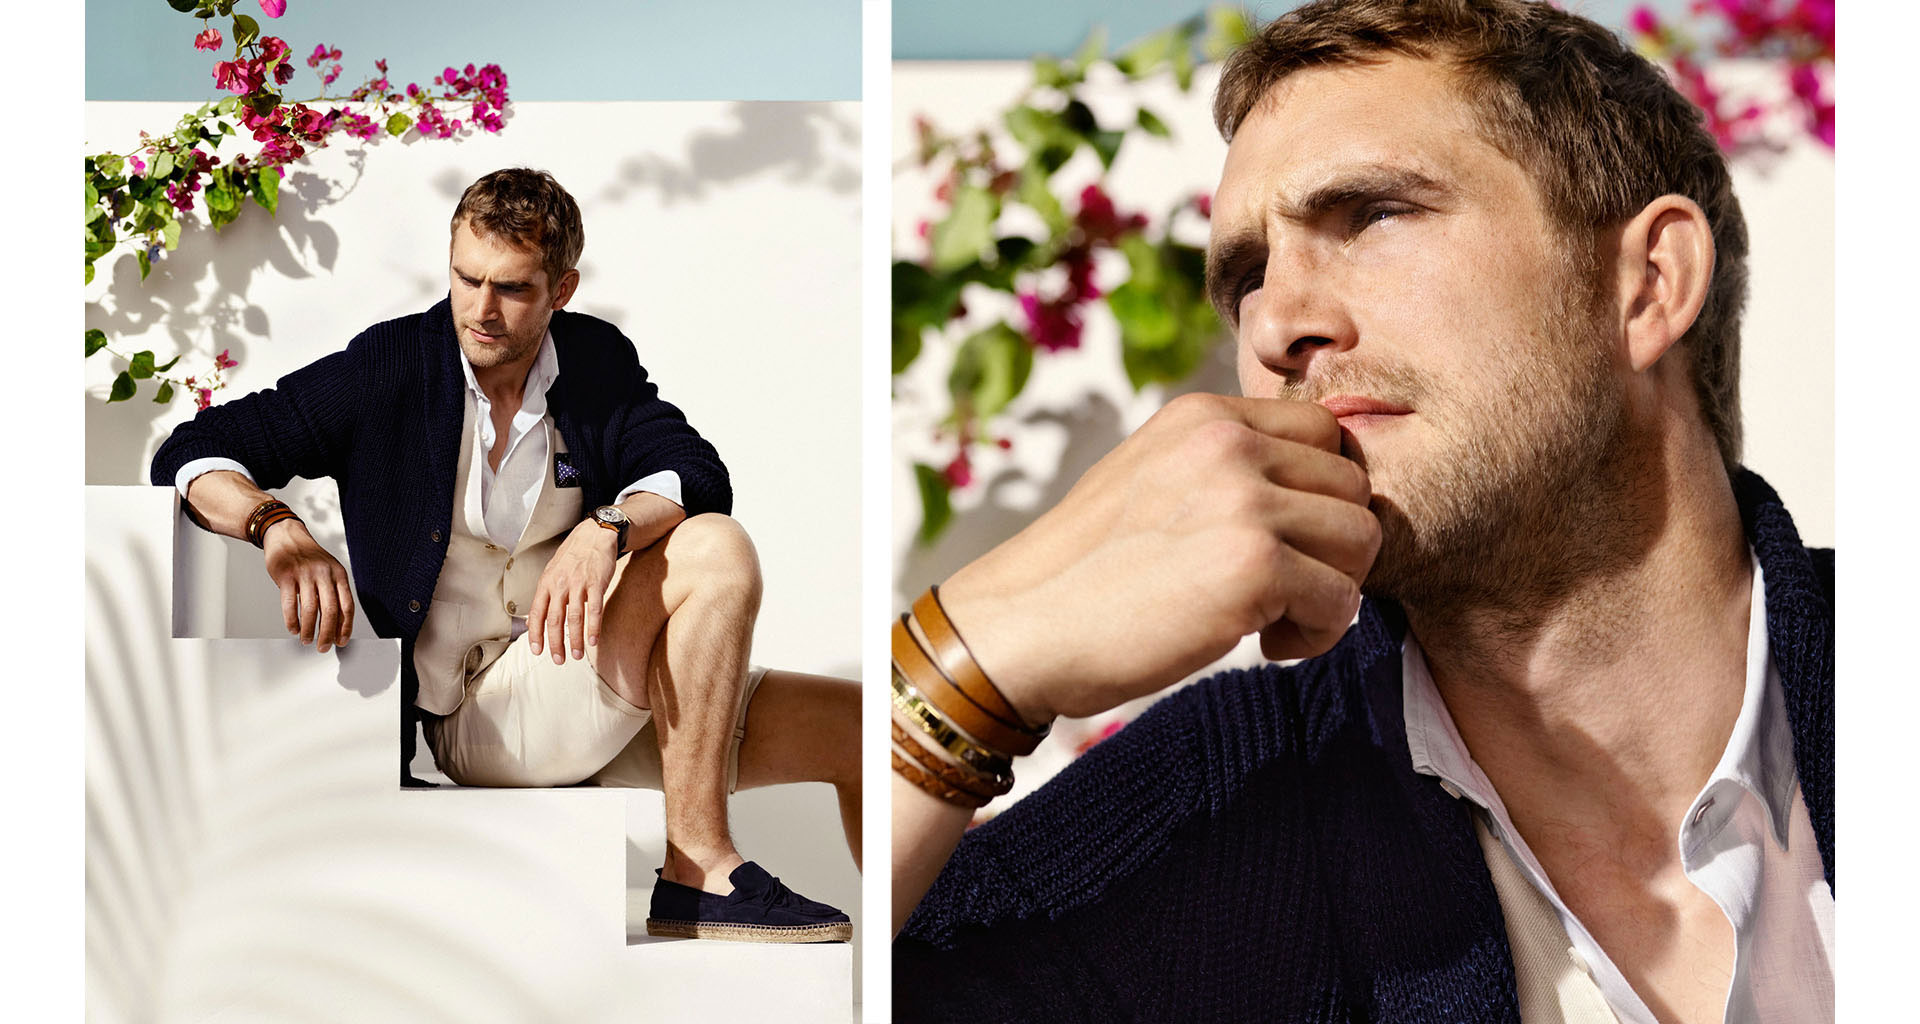 Massimo-Dutti-May-2014-Look-Book-Will-Chalker-007